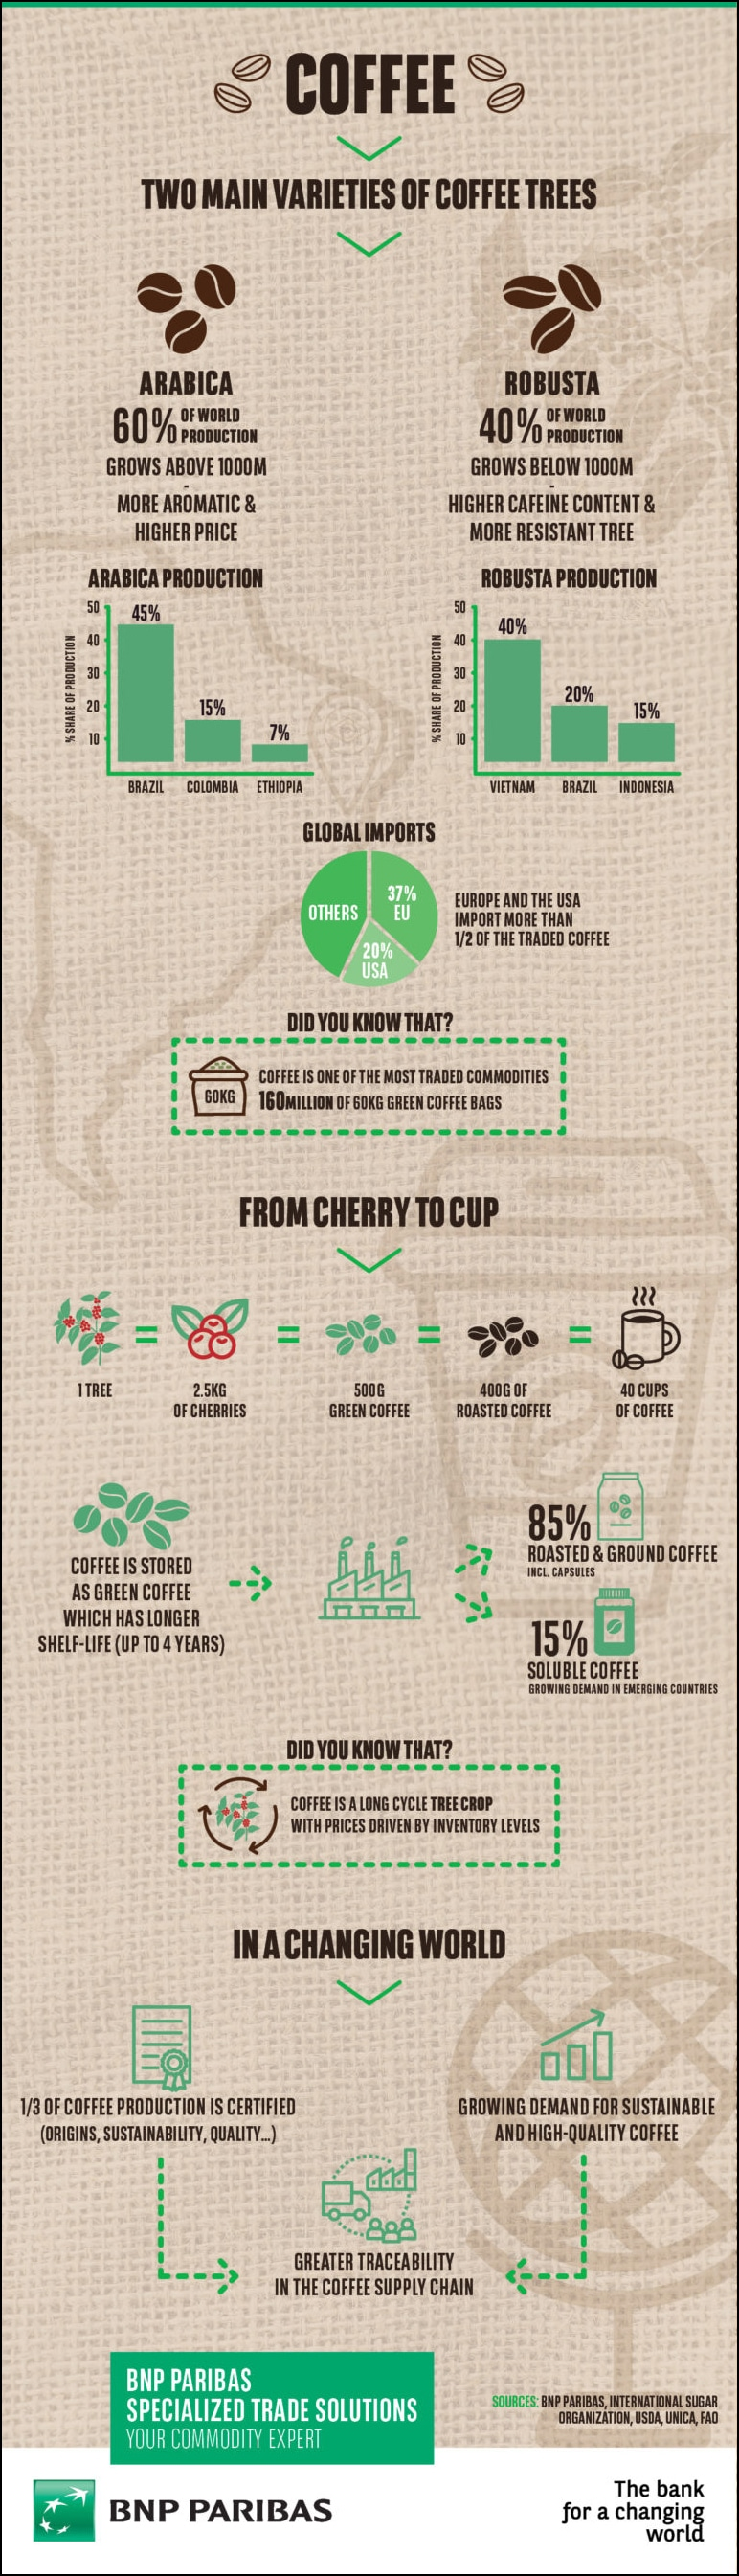 One-third of the world's coffee is certified, but with growing demand for a sustainable, high-quality product, traceability is key.